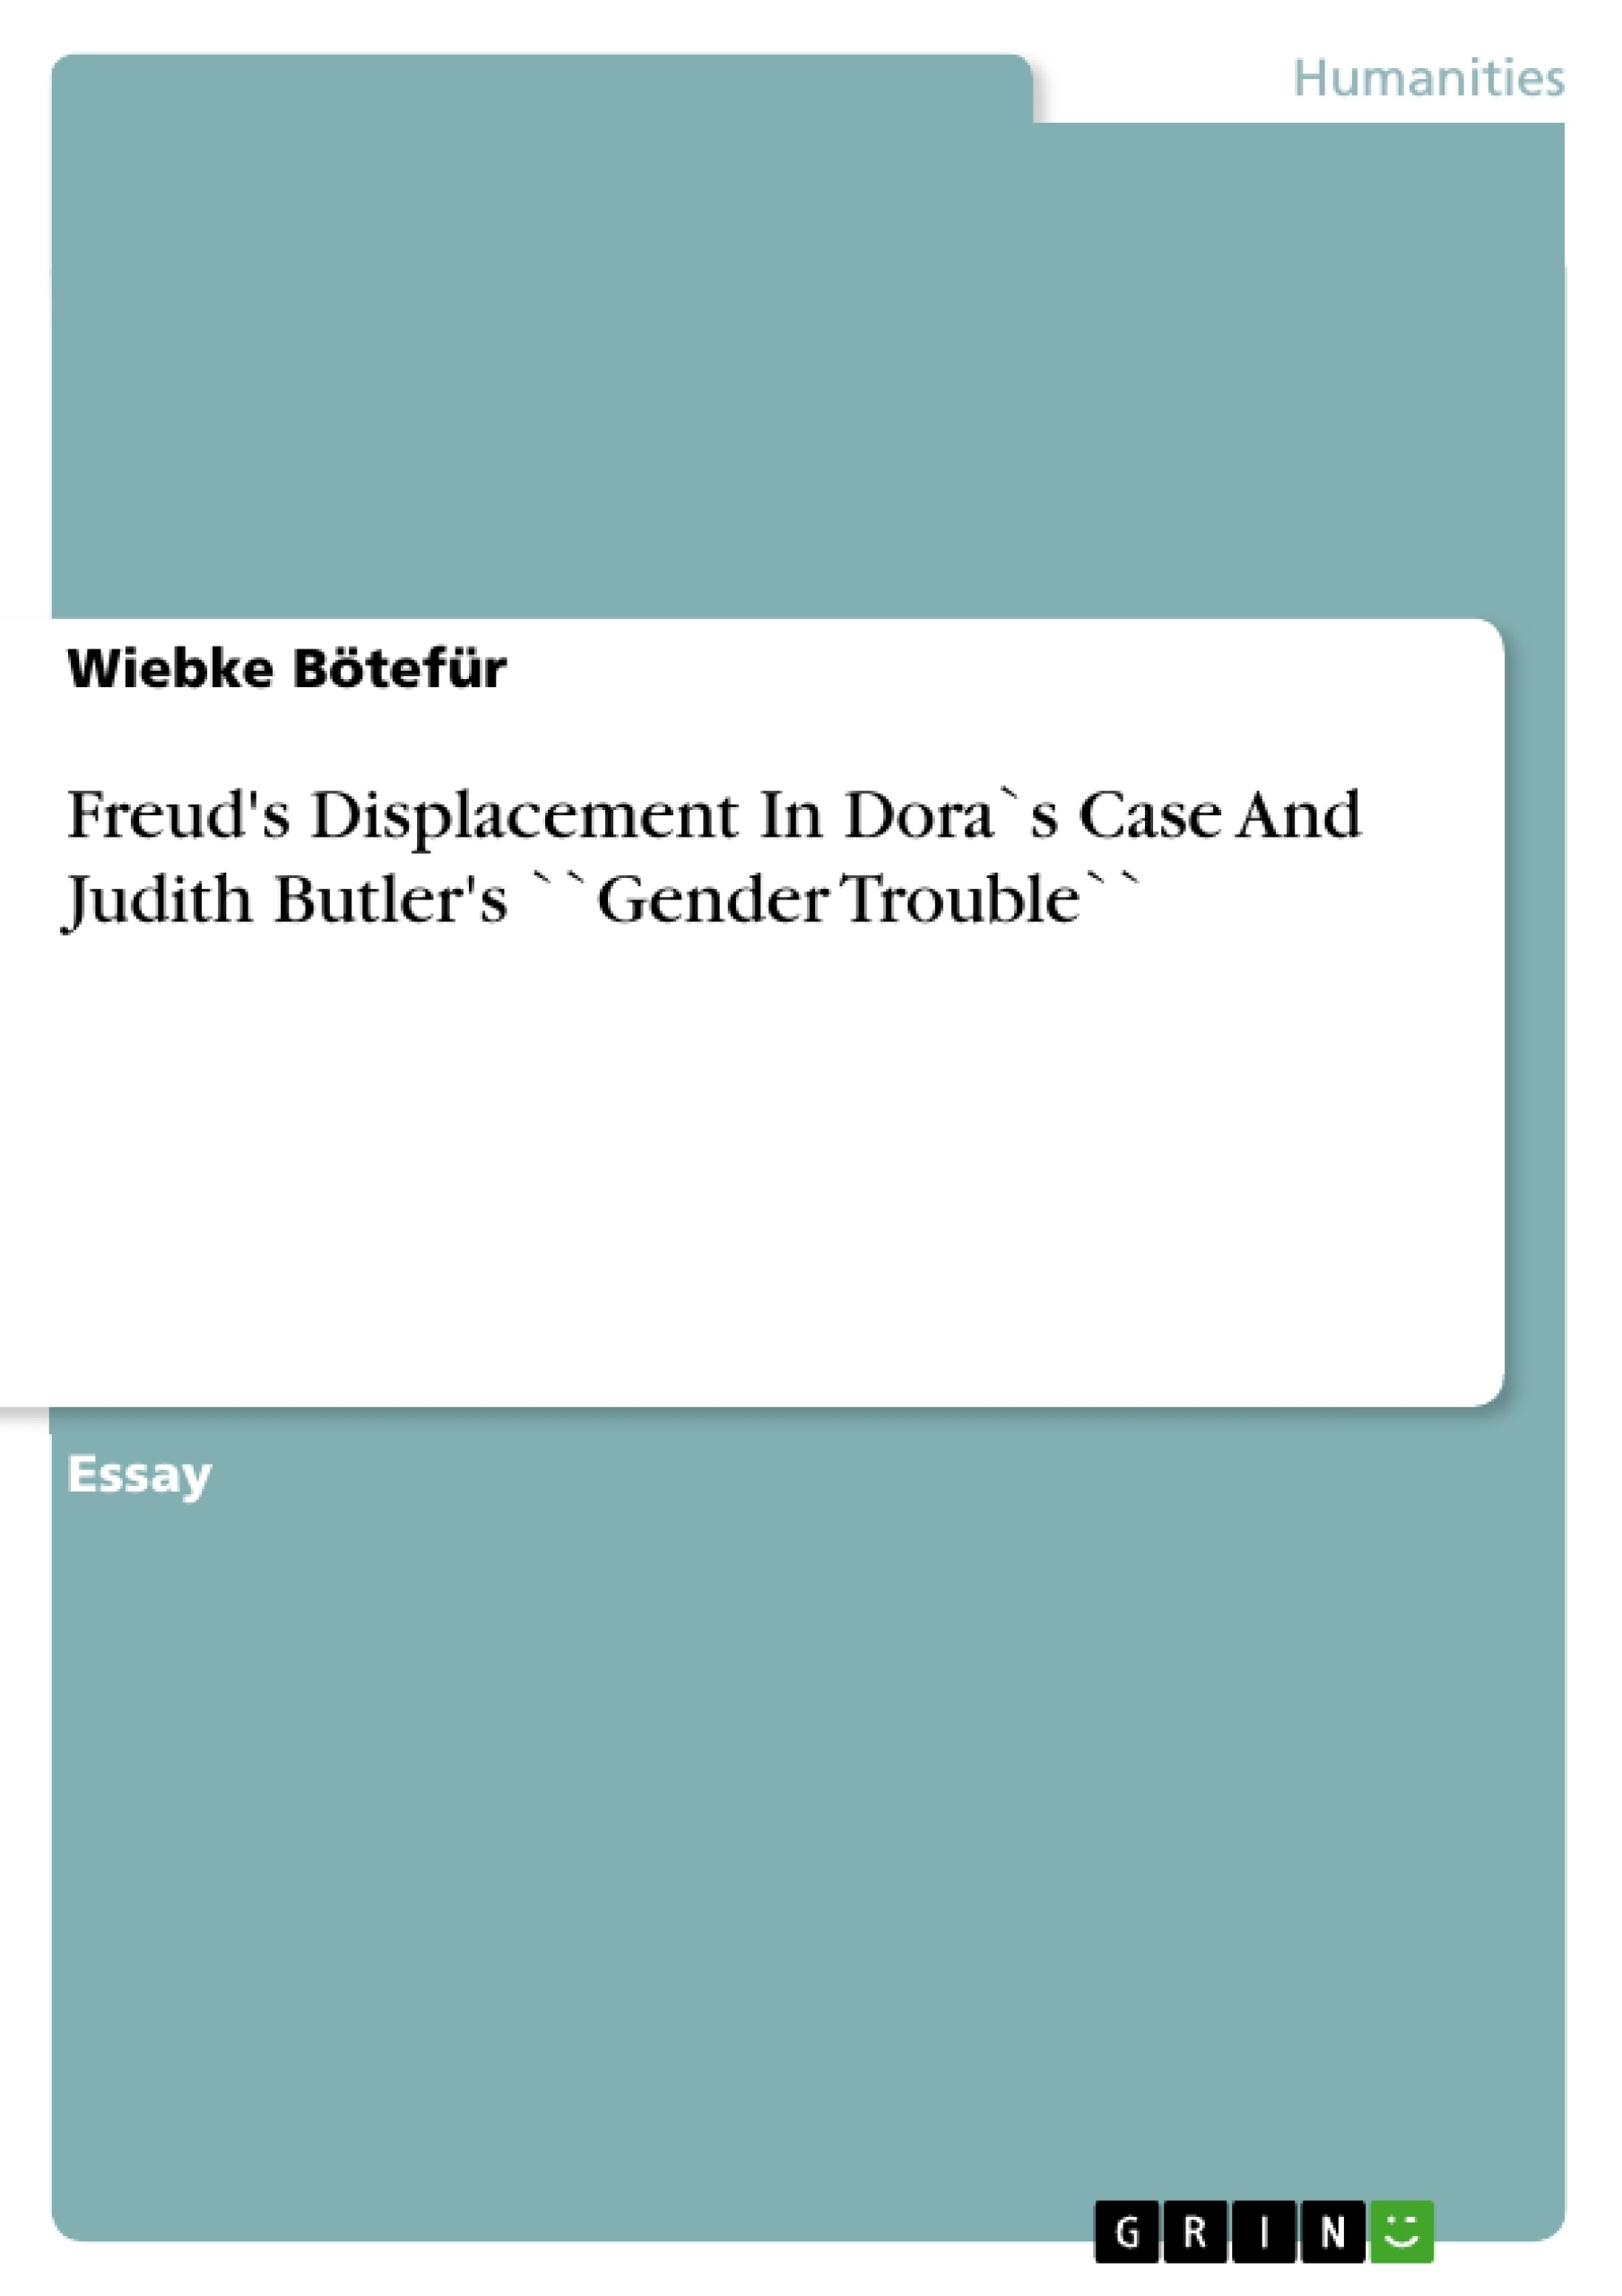 Judith Butler's essay Gender Trouble